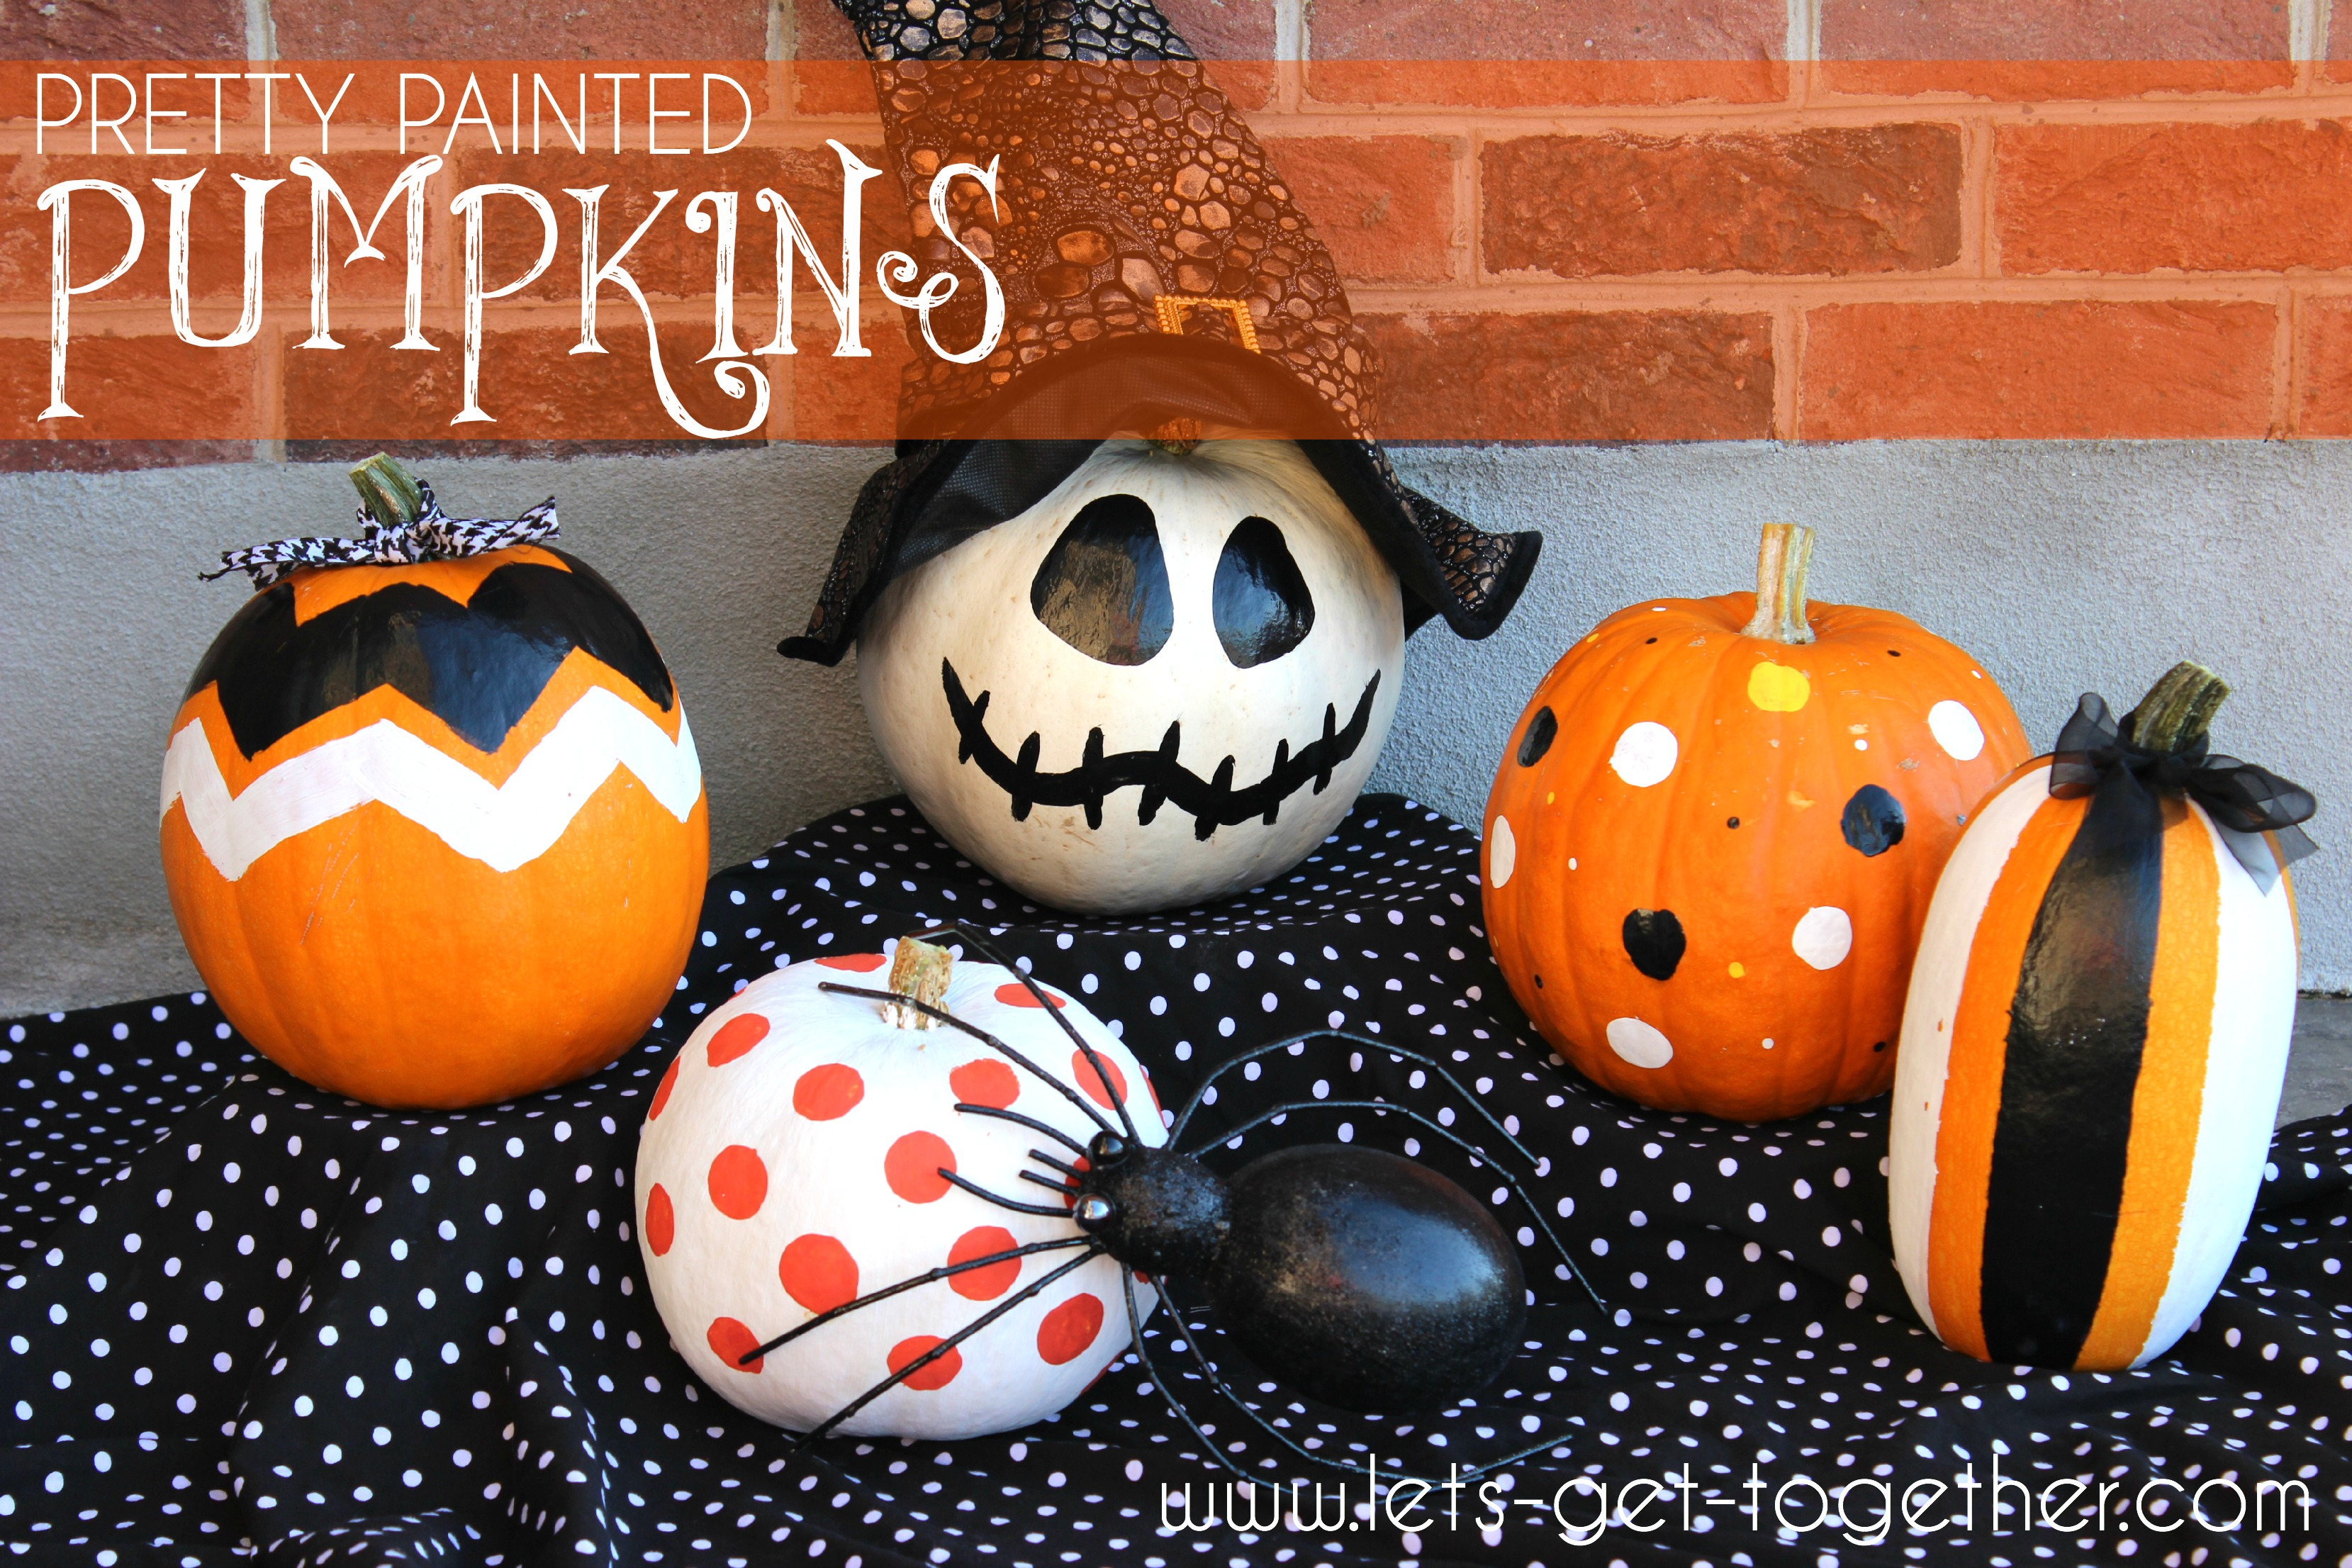 Pretty Painted Pumpkins Images